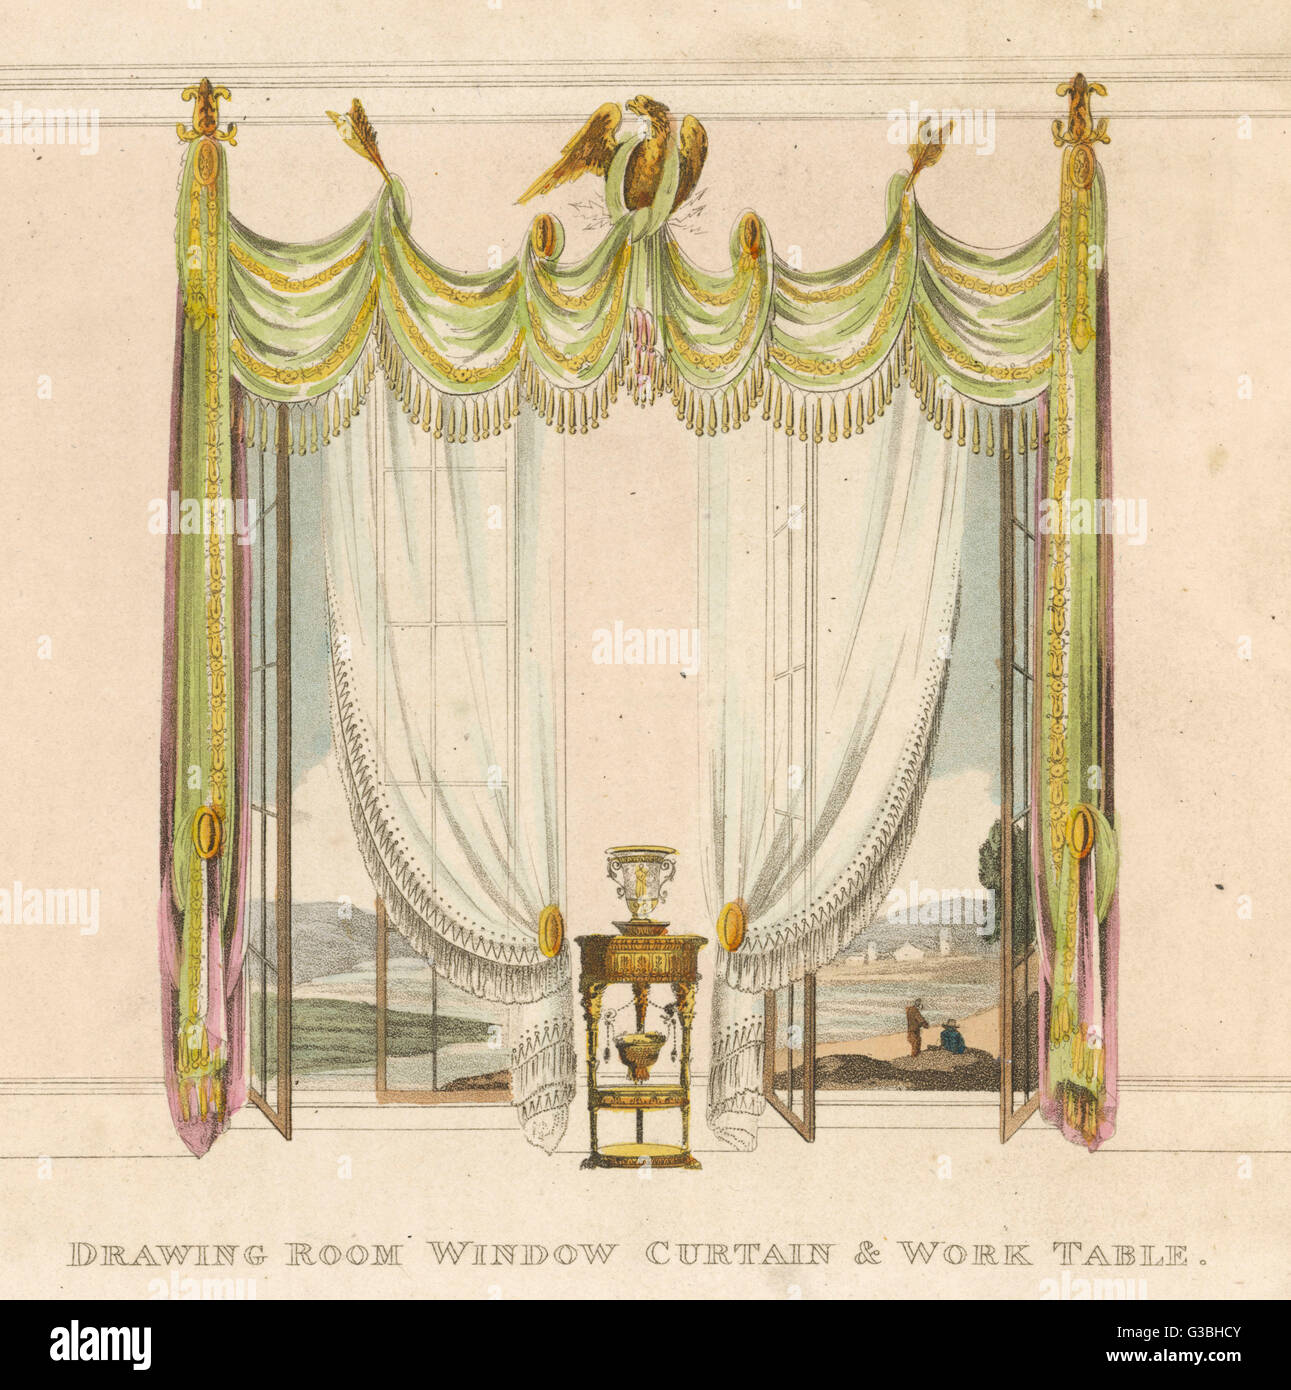 Drawing Room Window Curtains In The Classical Style With Bird And Stock Photo Alamy